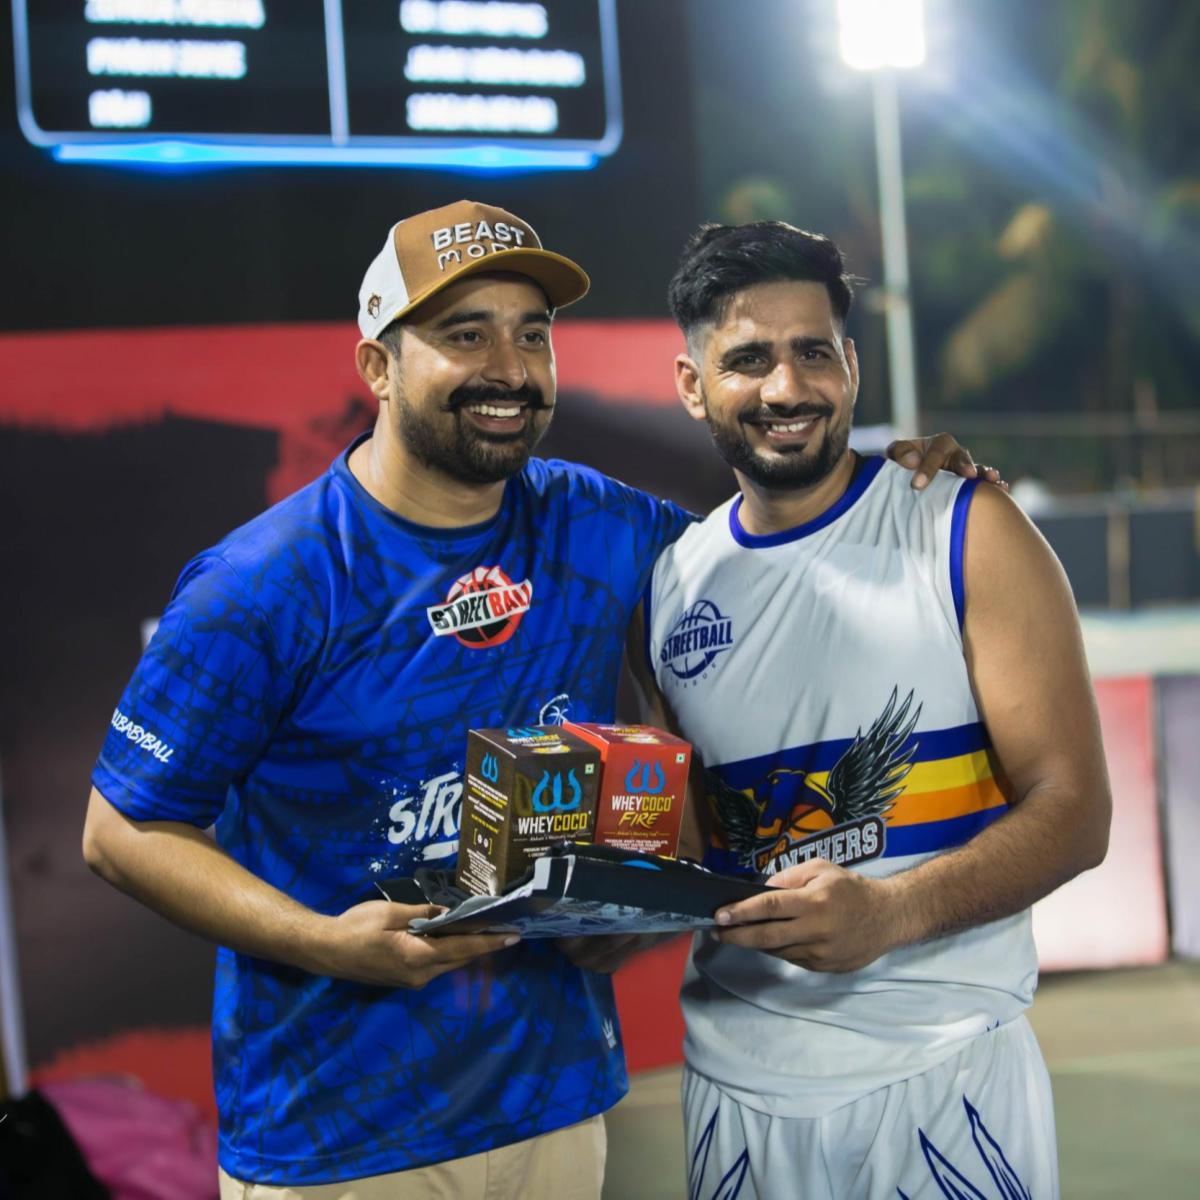 #ThrowbackThursday @rannvijaysingha presenting WheyCoco gift hamper to the winning captain Amit Gahlot of Flying Panthers at Streetball League.  #WheyCoco #VegProtein #StreetballLeague #UnstoppableYou #HighProtein #Workout #Fitness #Protein #Healthy #FitnessGoals #Wellness